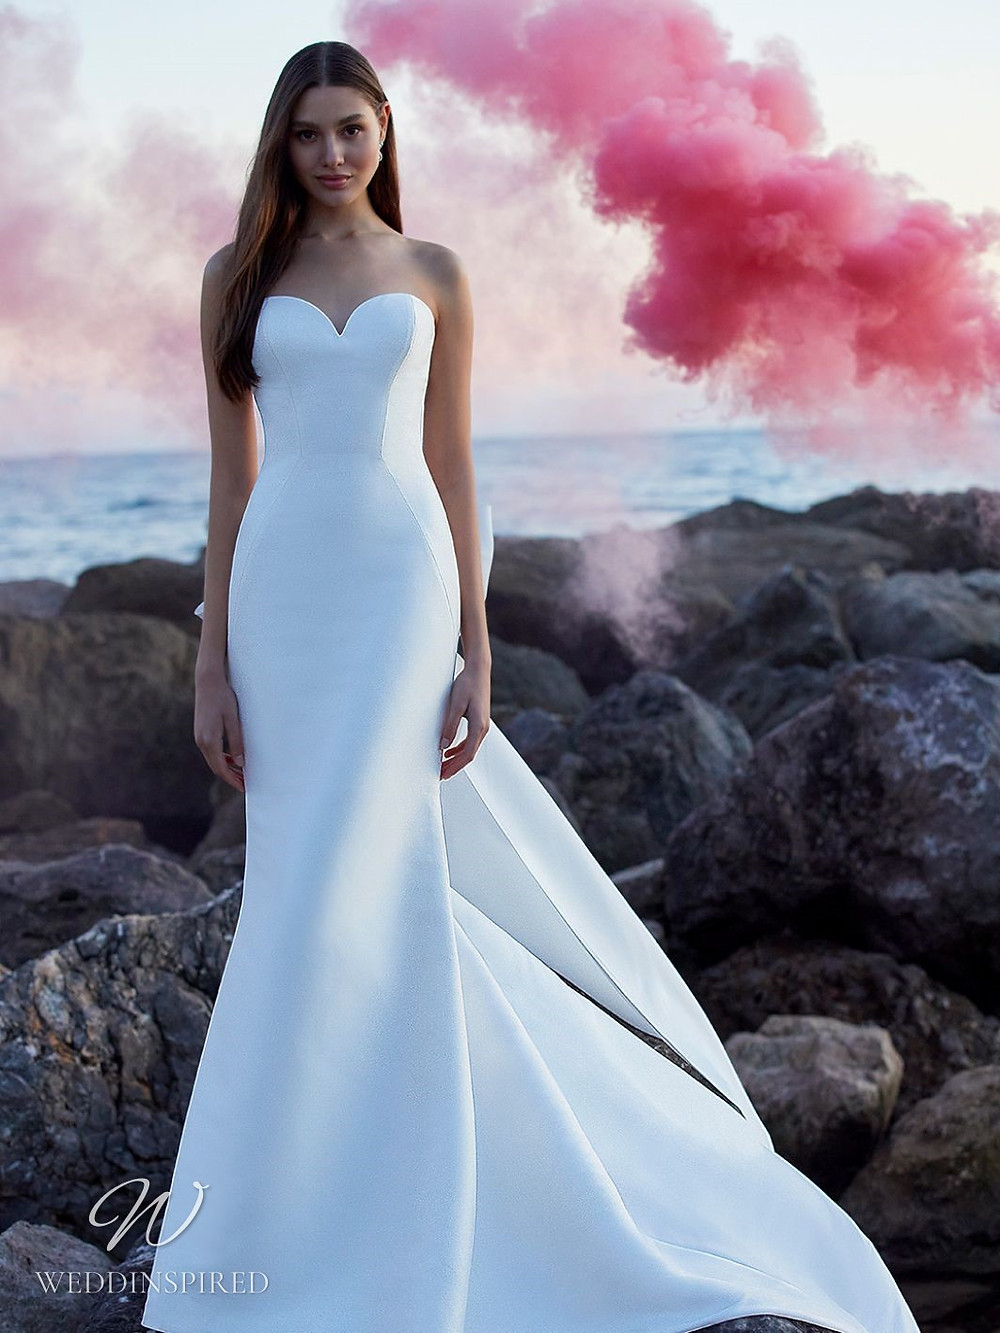 A Blue by Enzoani 2021 strapless satin mermaid wedding dress with a train